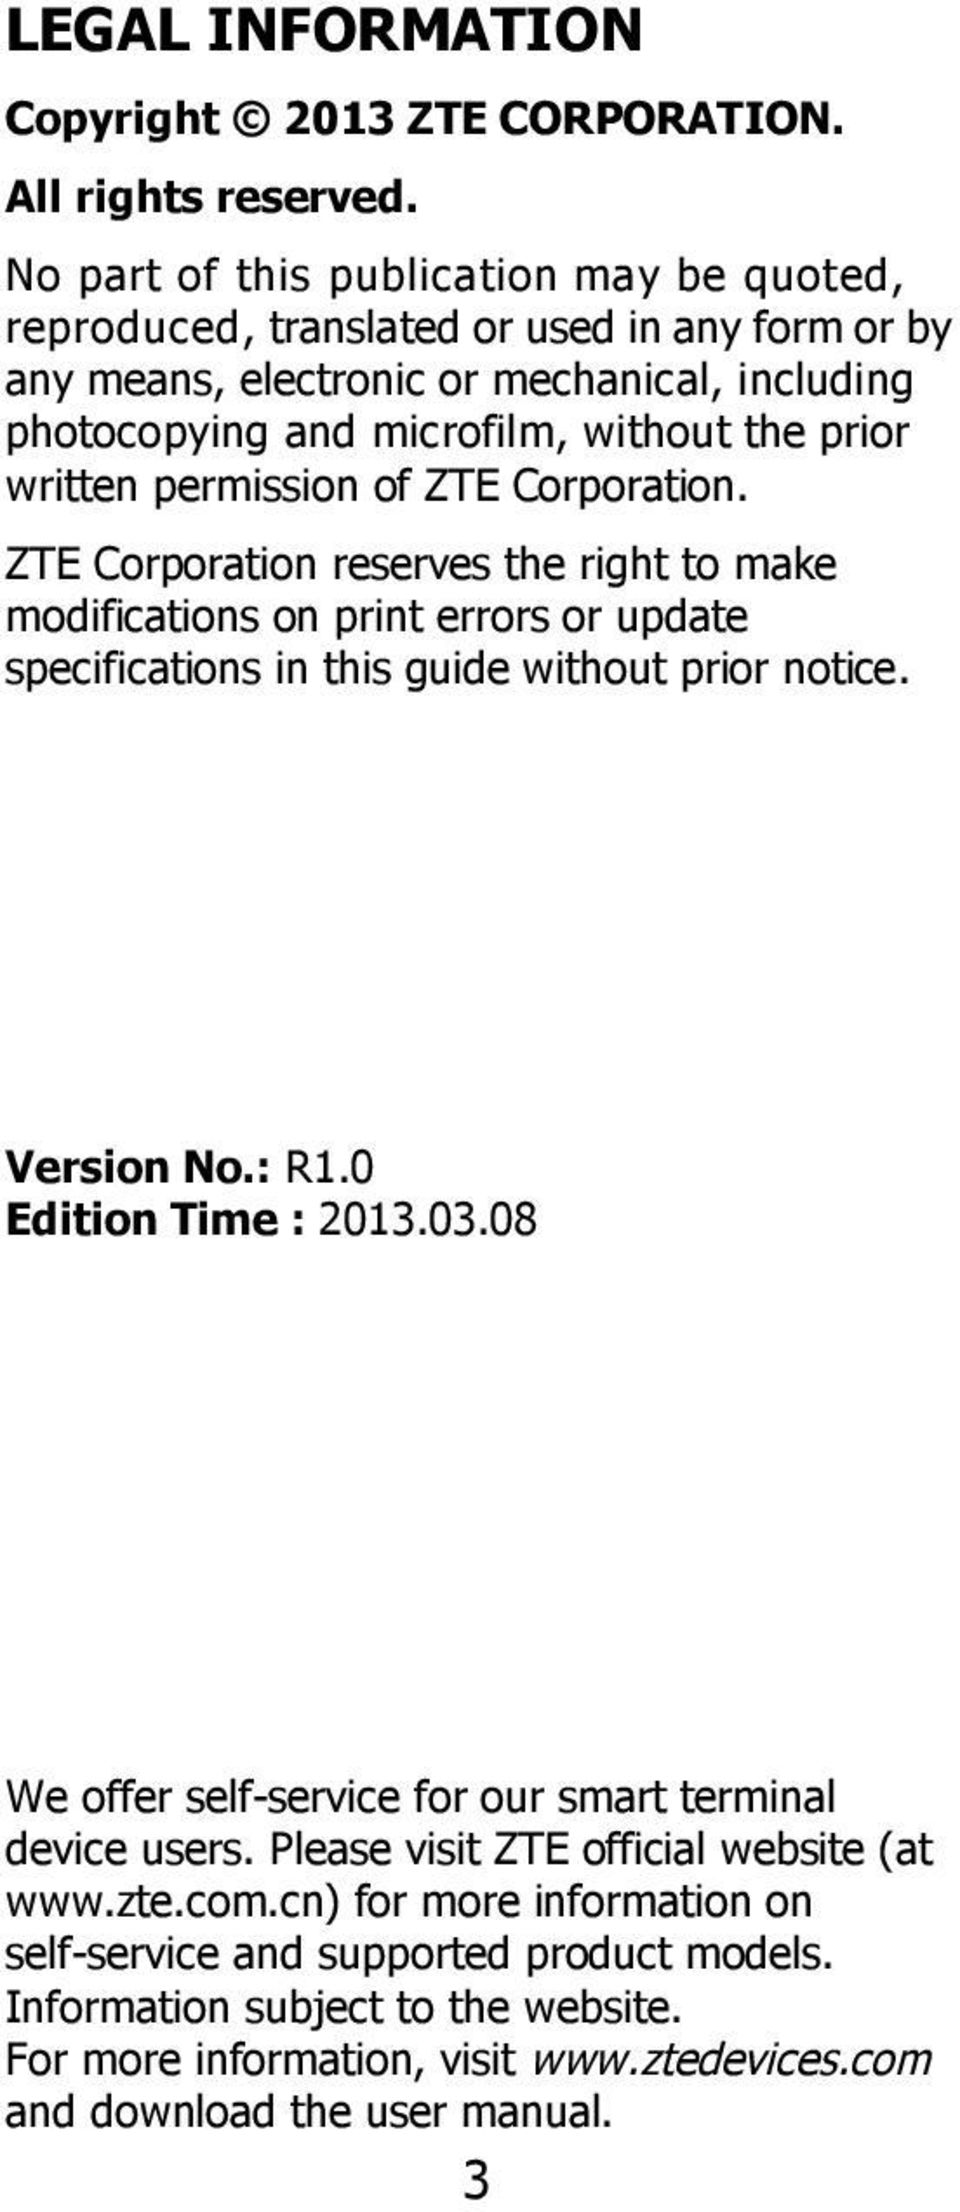 written permission of ZTE Corporation. ZTE Corporation reserves the right to make modifications on print errors or update specifications in this guide without prior notice. Version No.: R1.